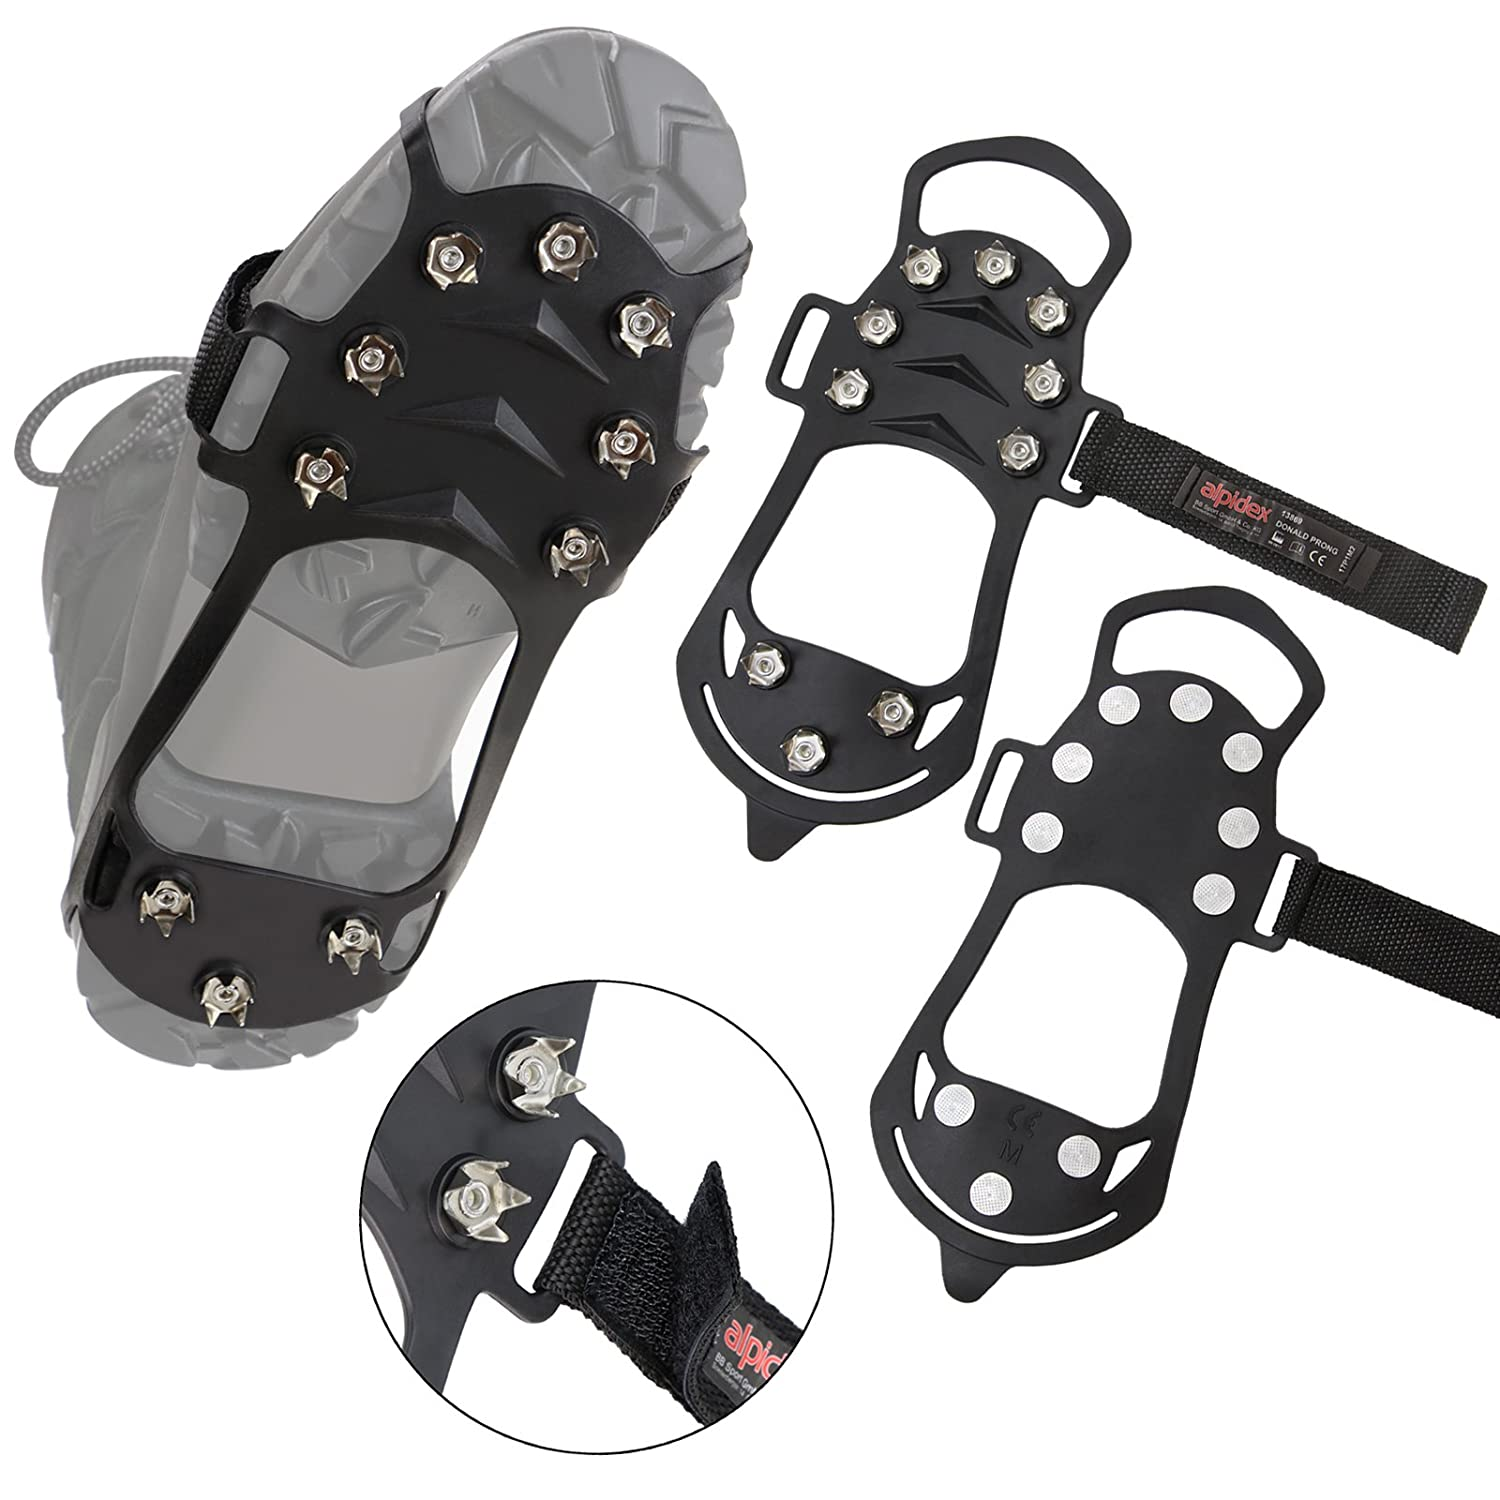 ALPIDEX Anti slip shoe spikes with 10 spikes snow and ice grips in various sizes